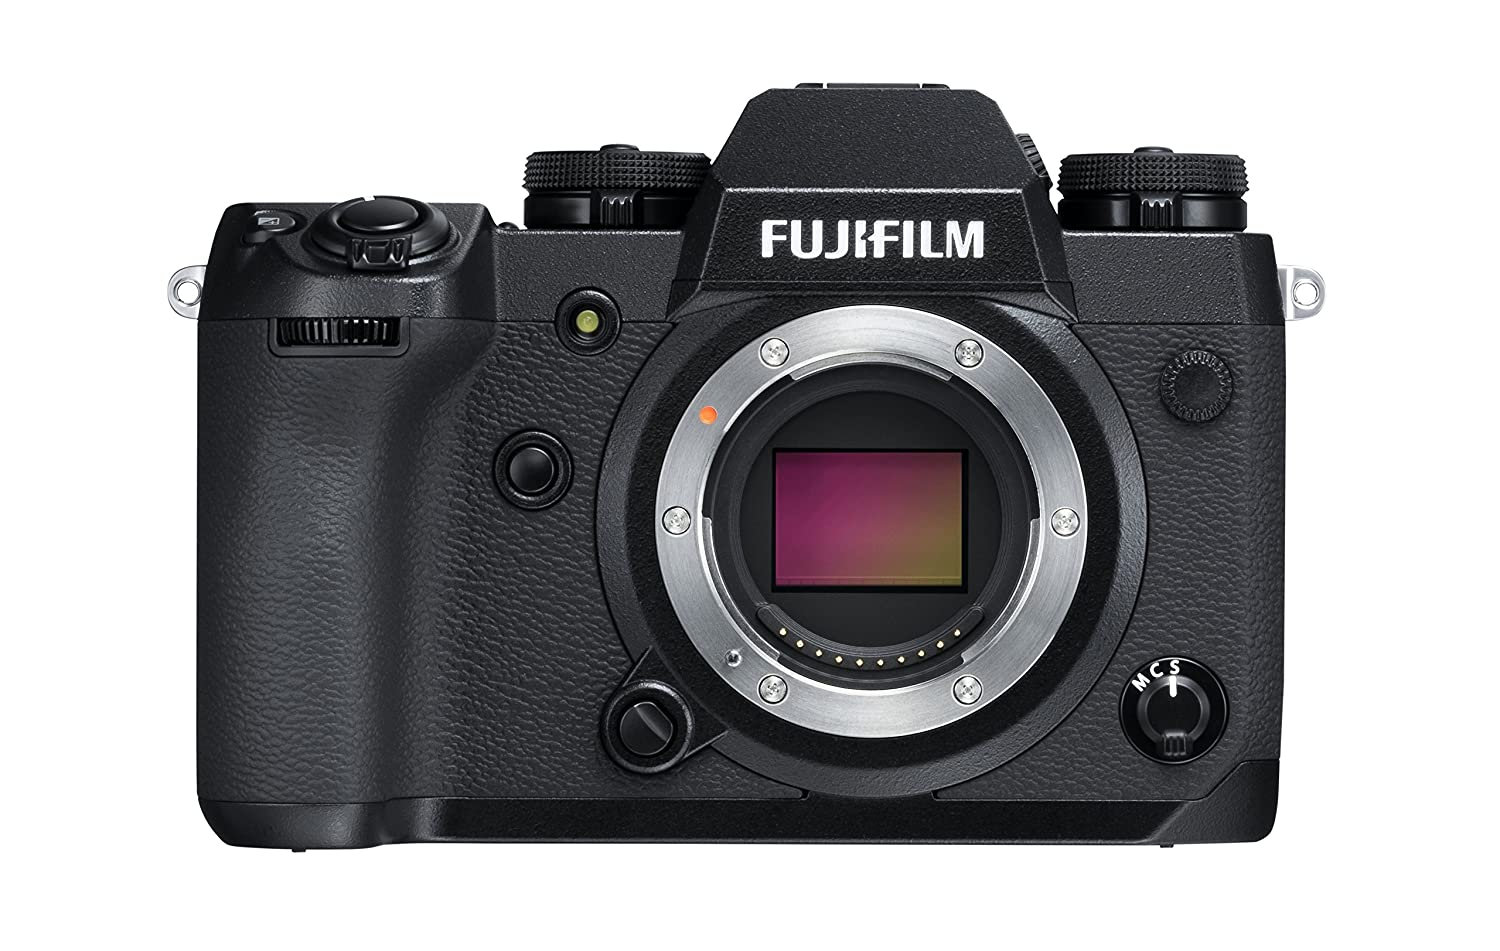 Fujifilm X-H1 - Cámara Digital sin Espejo (24.3 MP, 4K/30p) Color Negro